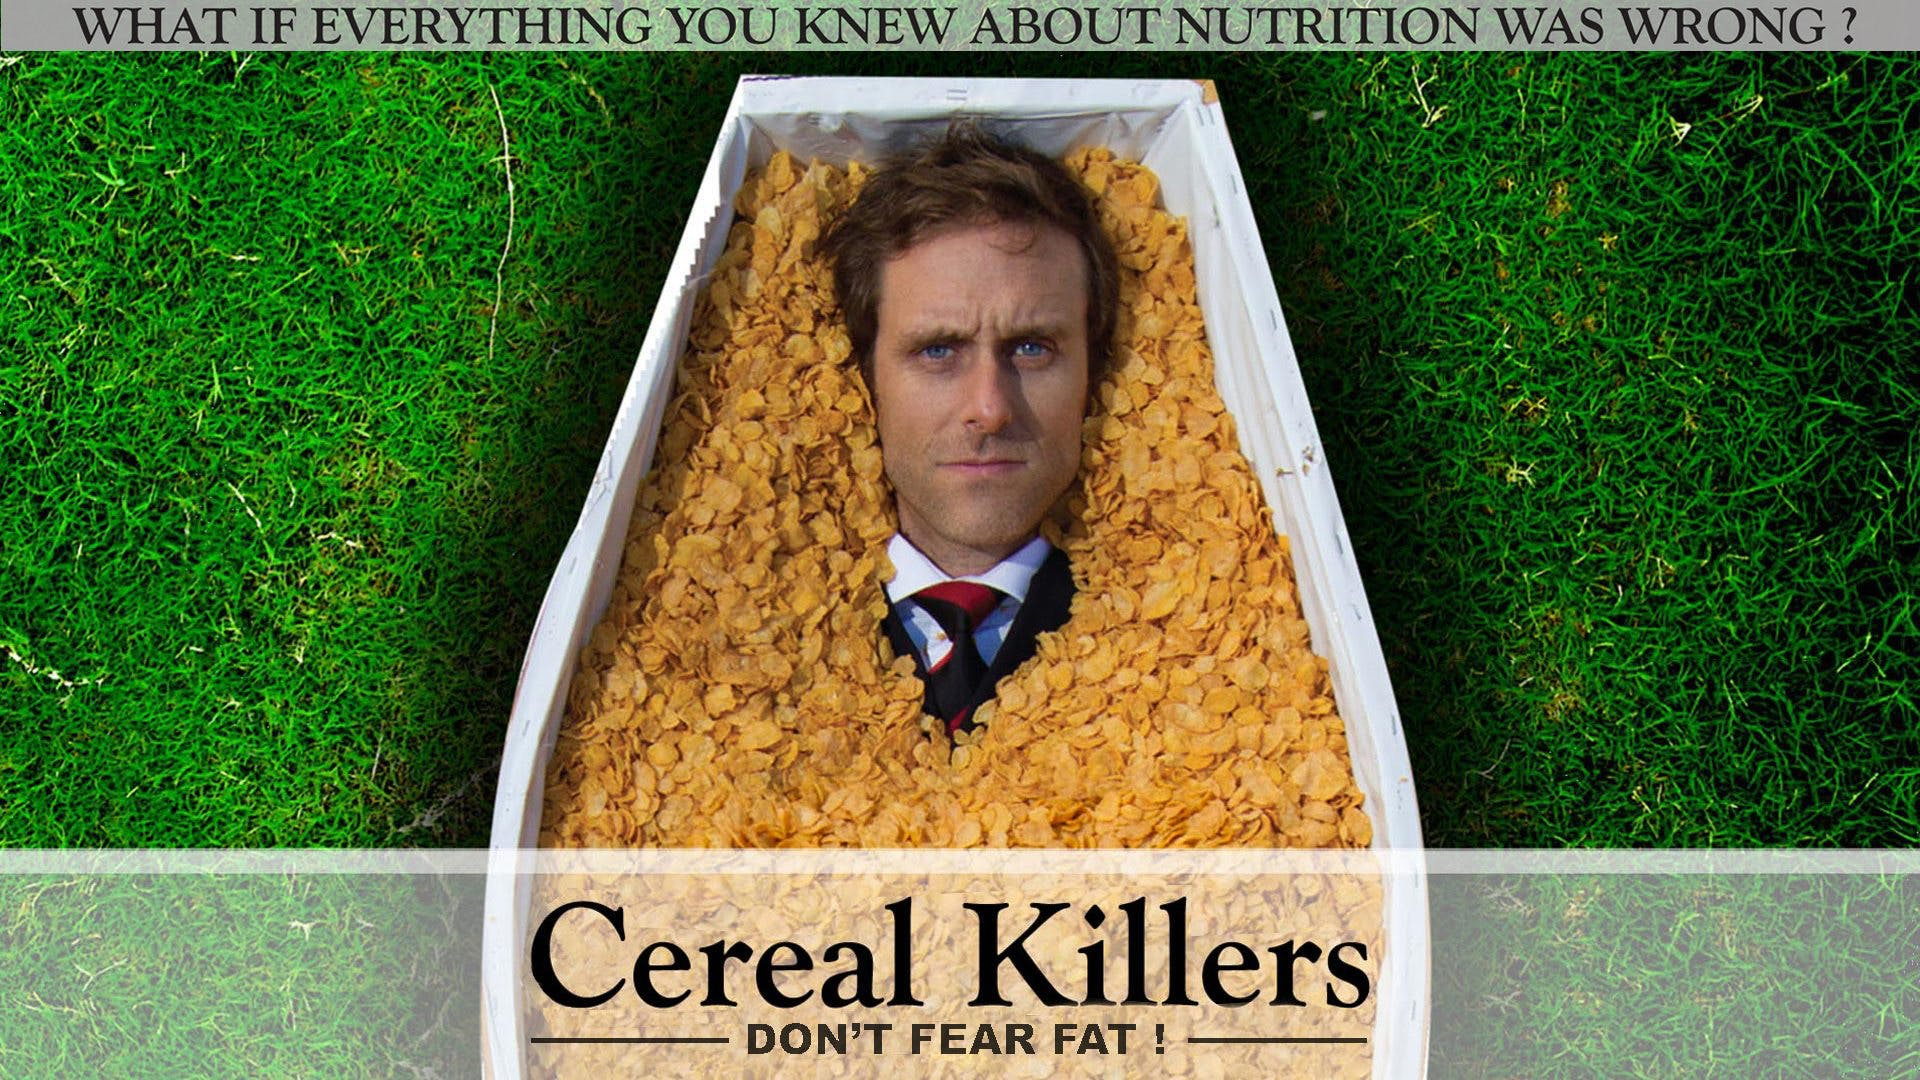 One of our favorite low-carb movies: Cereal Killers